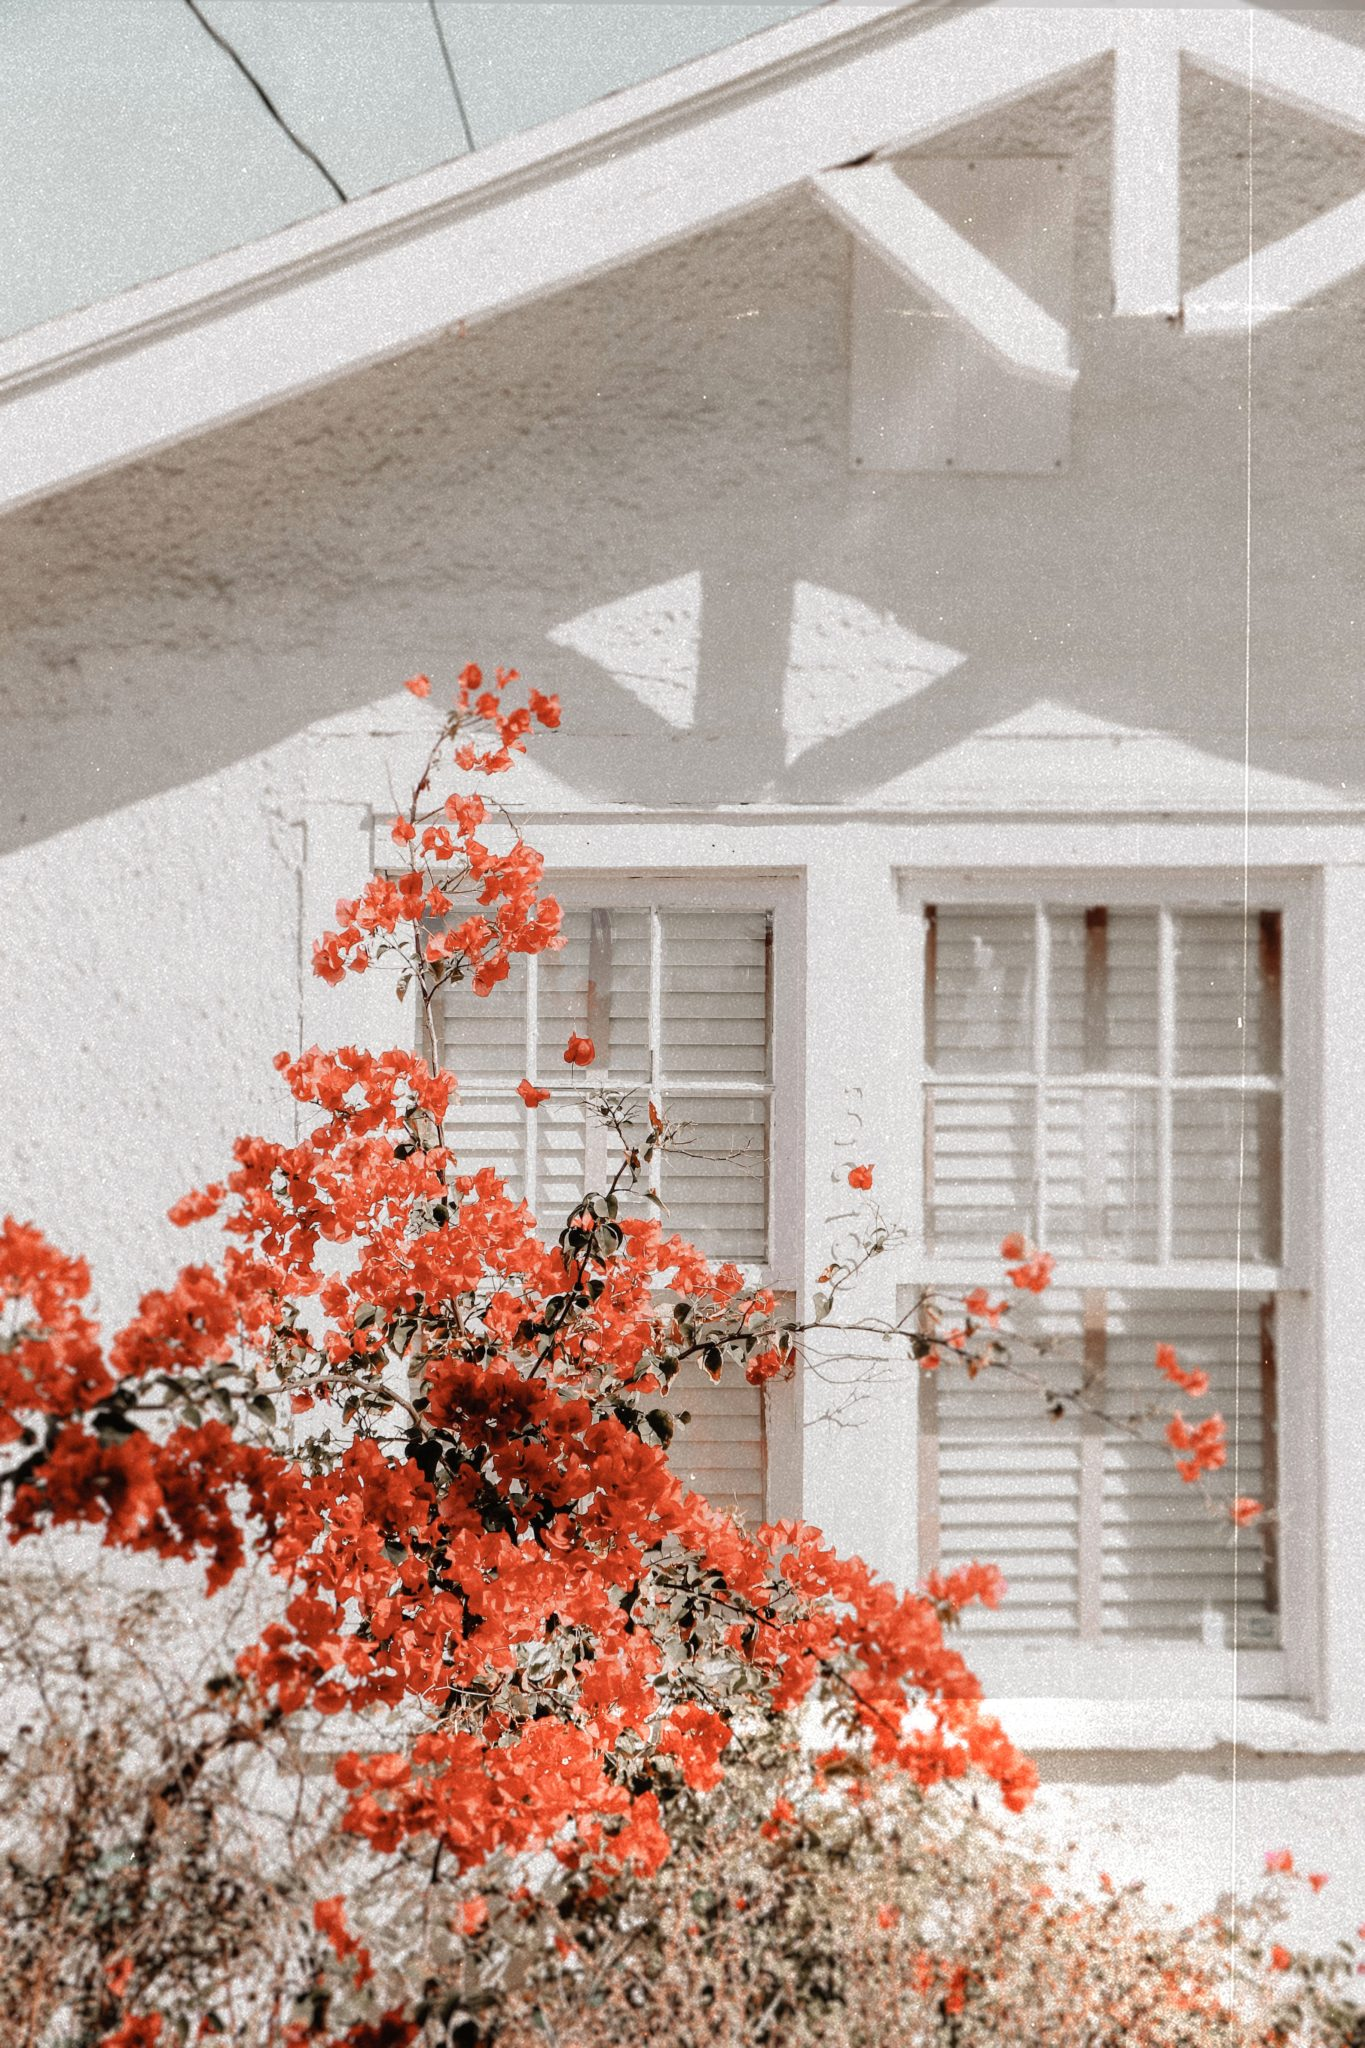 Spring Cleaning: Keeping Allergens Out of Your Home This Spring